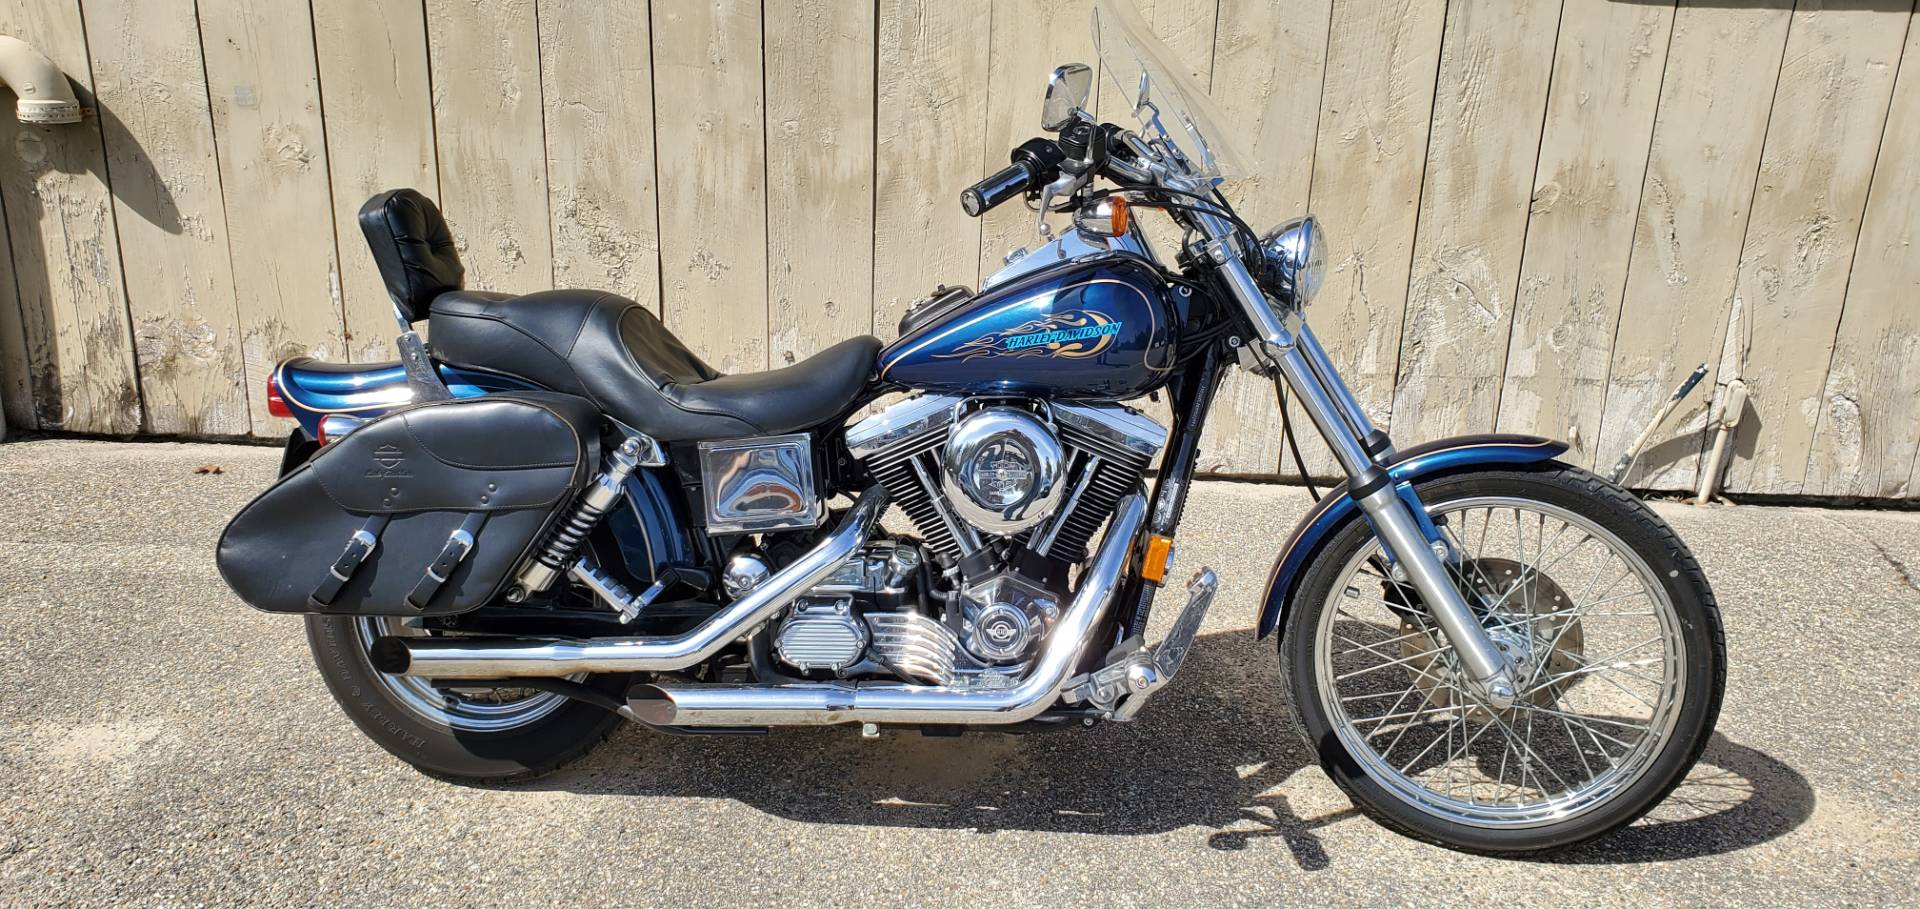 1998 Harley-Davidson FXDWG Dyna Wide Glide in Tamworth, New Hampshire - Photo 2